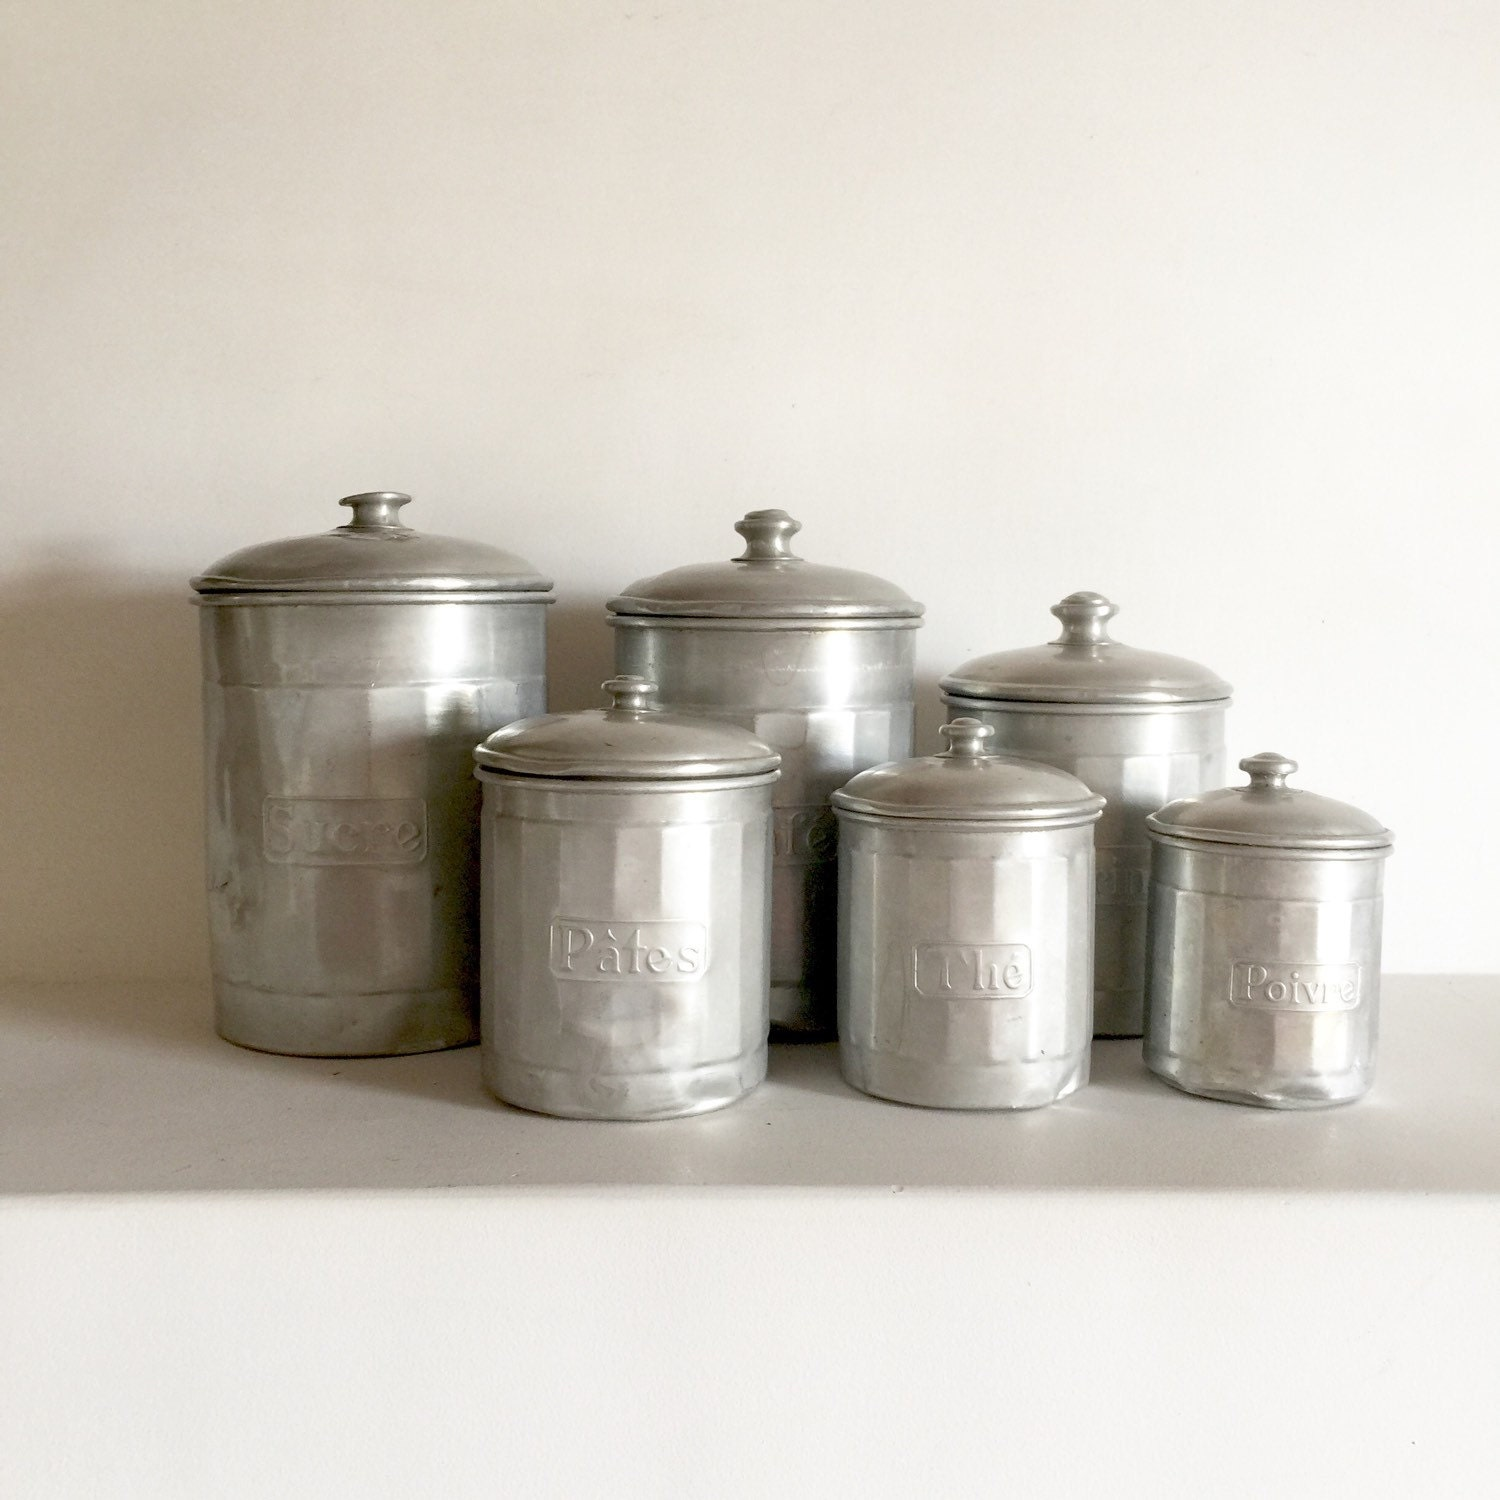 French vintage aluminum canister set french kitchen for Toko aluminium kitchen set